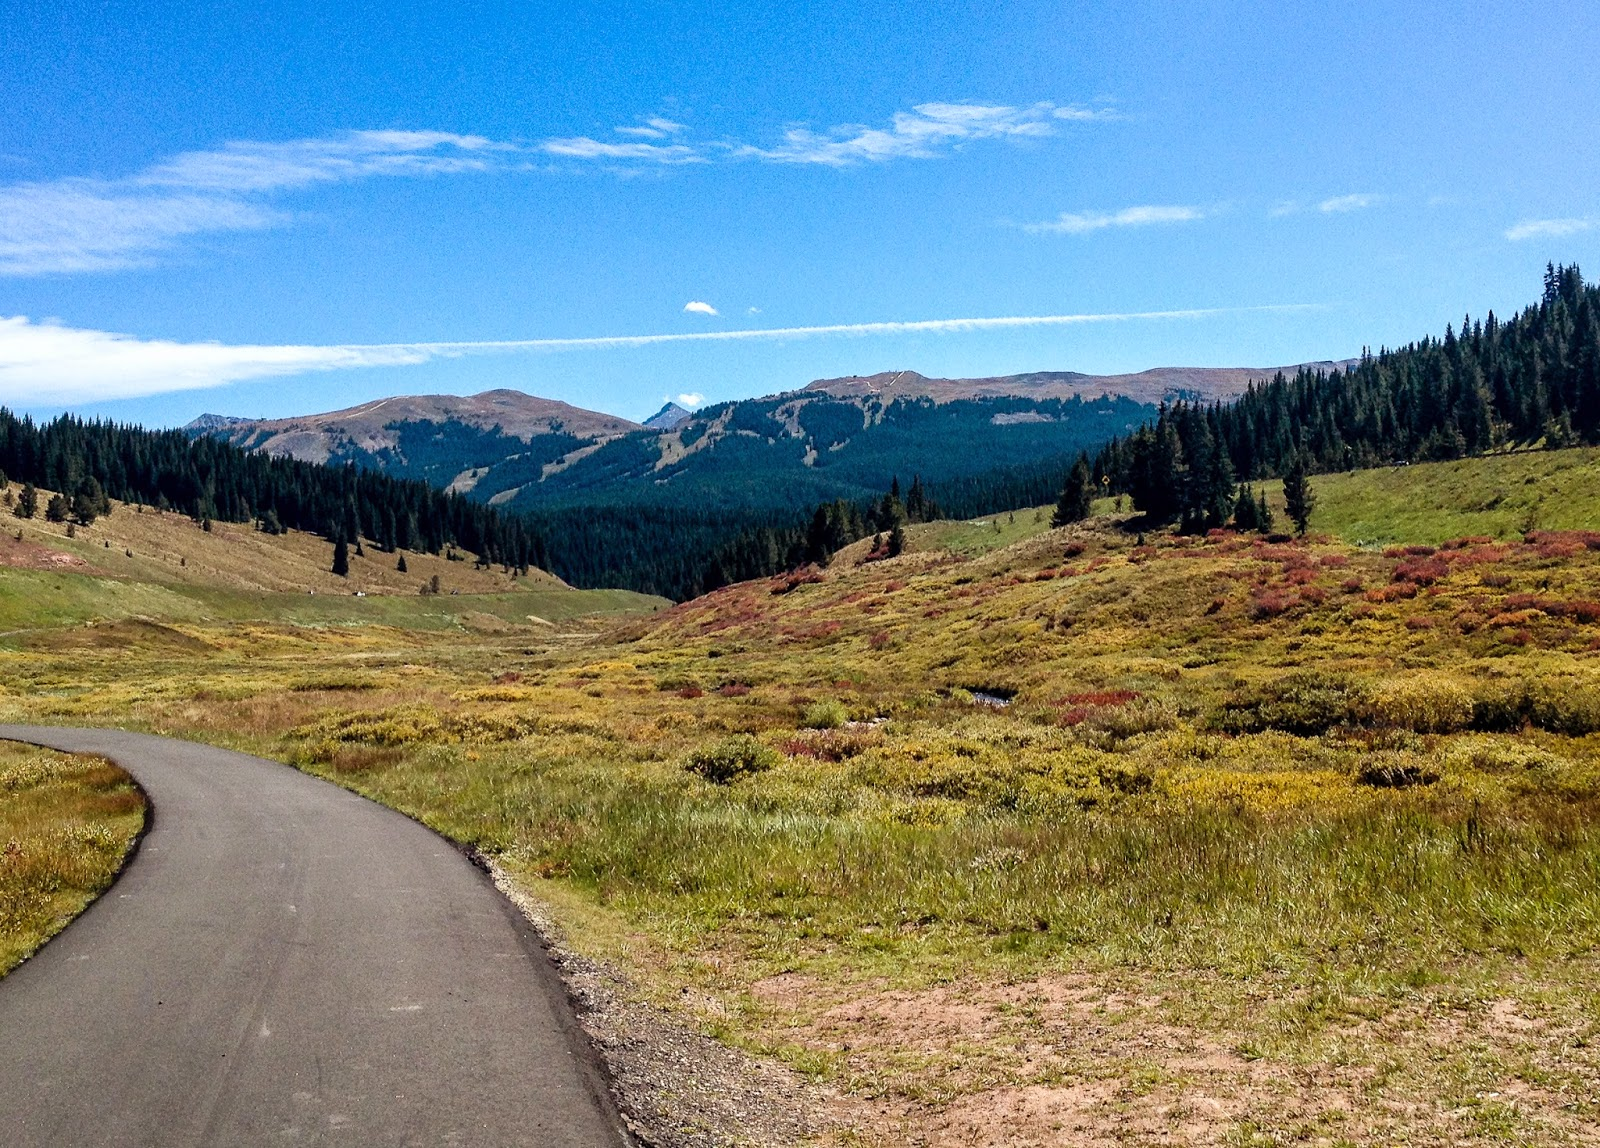 Bike path on Vail Pass. Photo by Laurie Decoteau